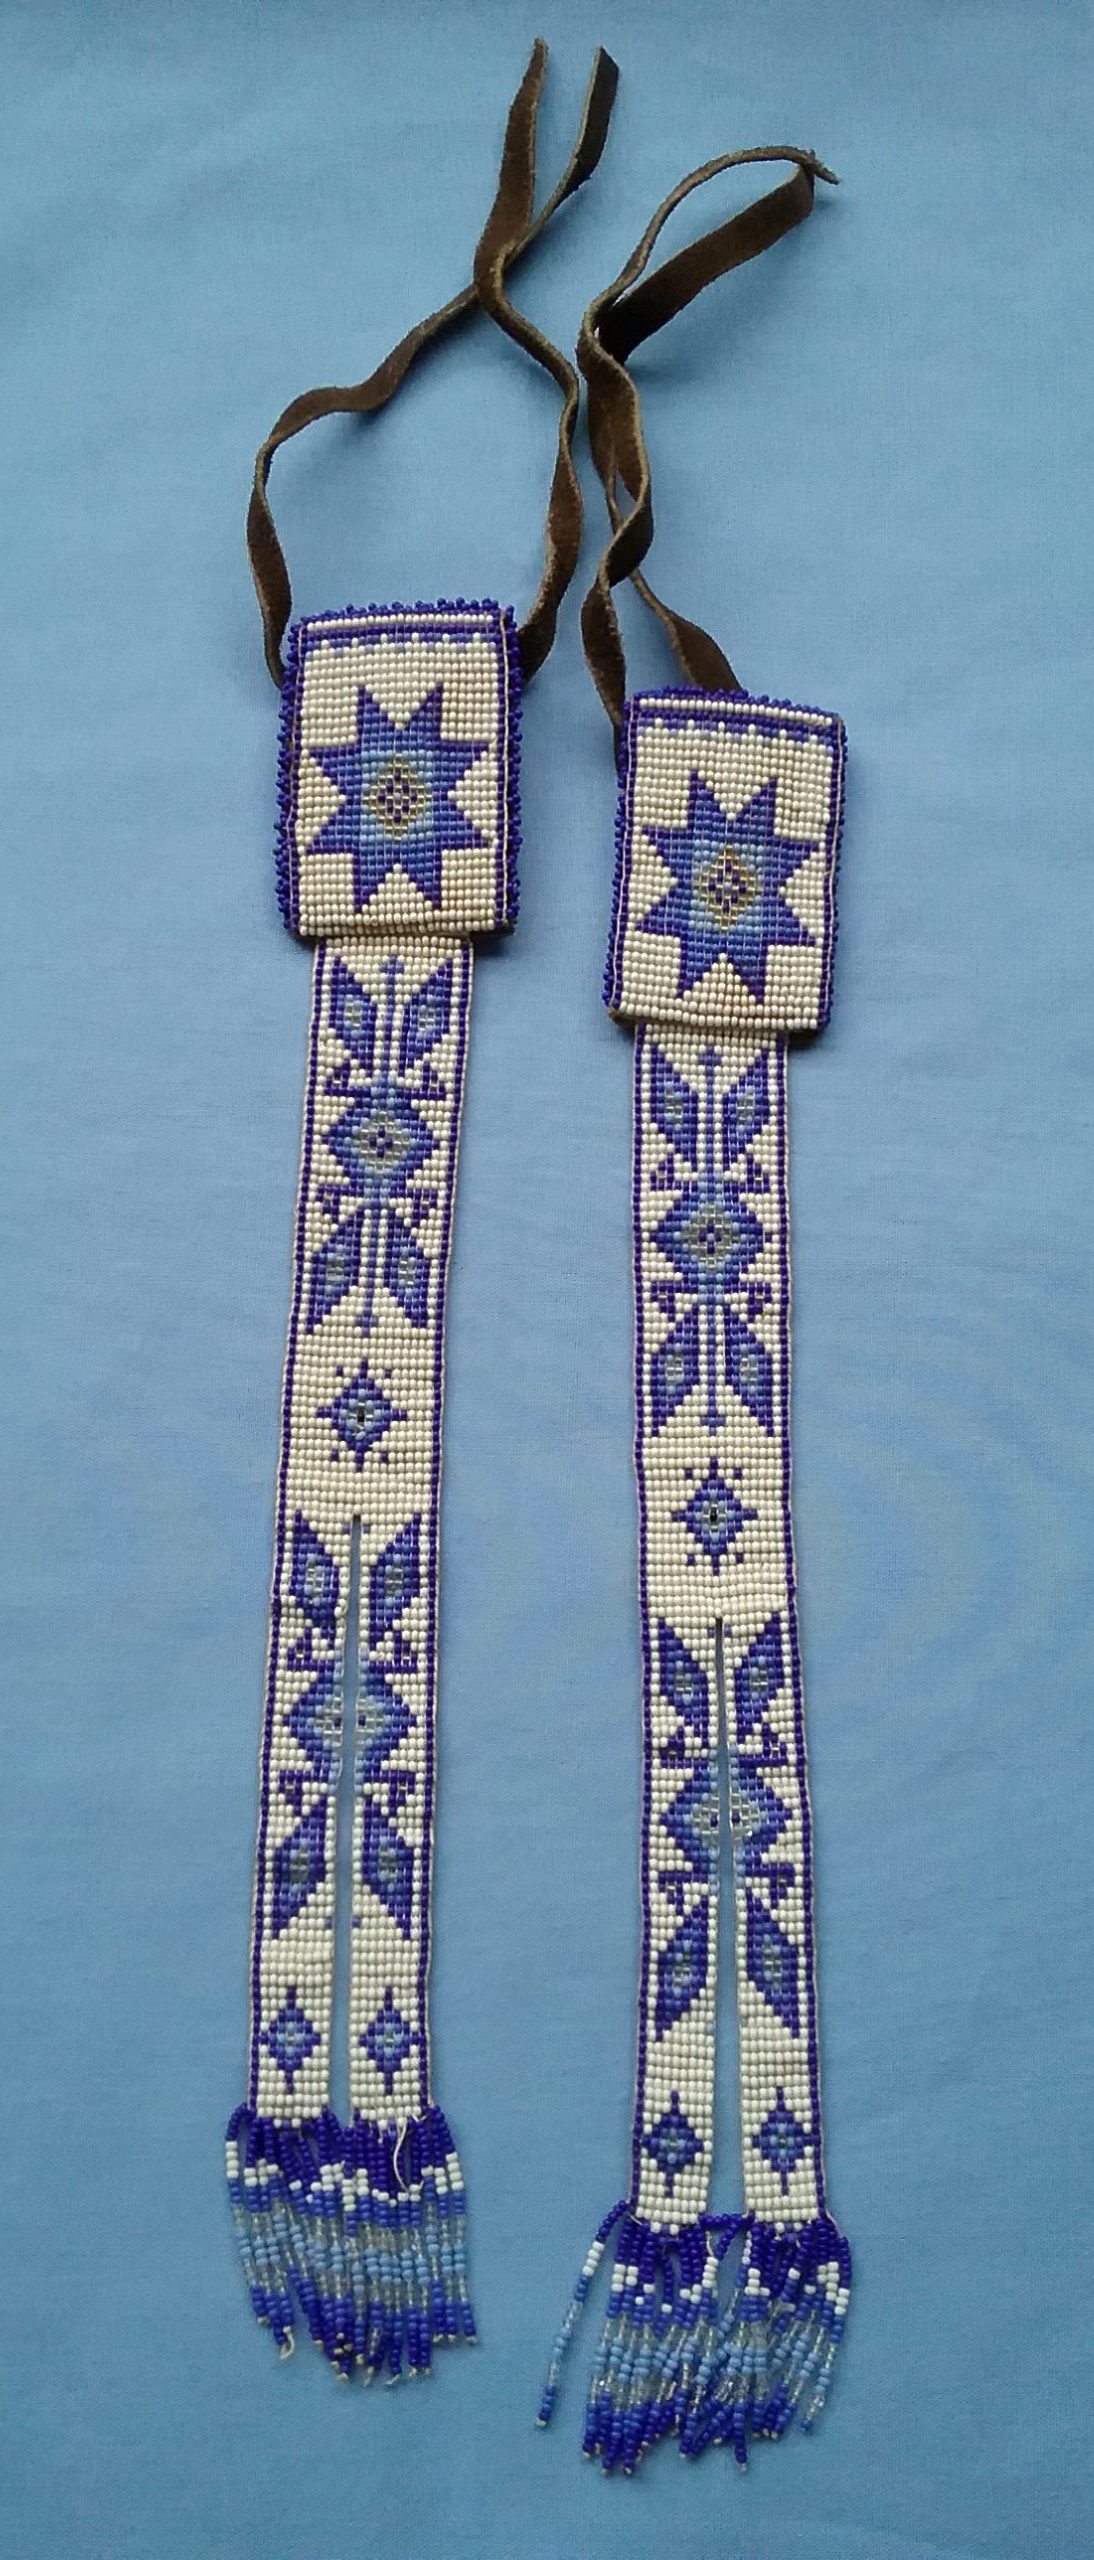 Braid Ties: These beaded blue and white braid ties were purchased in the Colorado/New Mexico area by Camille Warzecha of Little Falls, MN, for her daughter Sheryl when she was a child. They are meant to be worn tied around braided hair. On loan from Camille Warzecha.